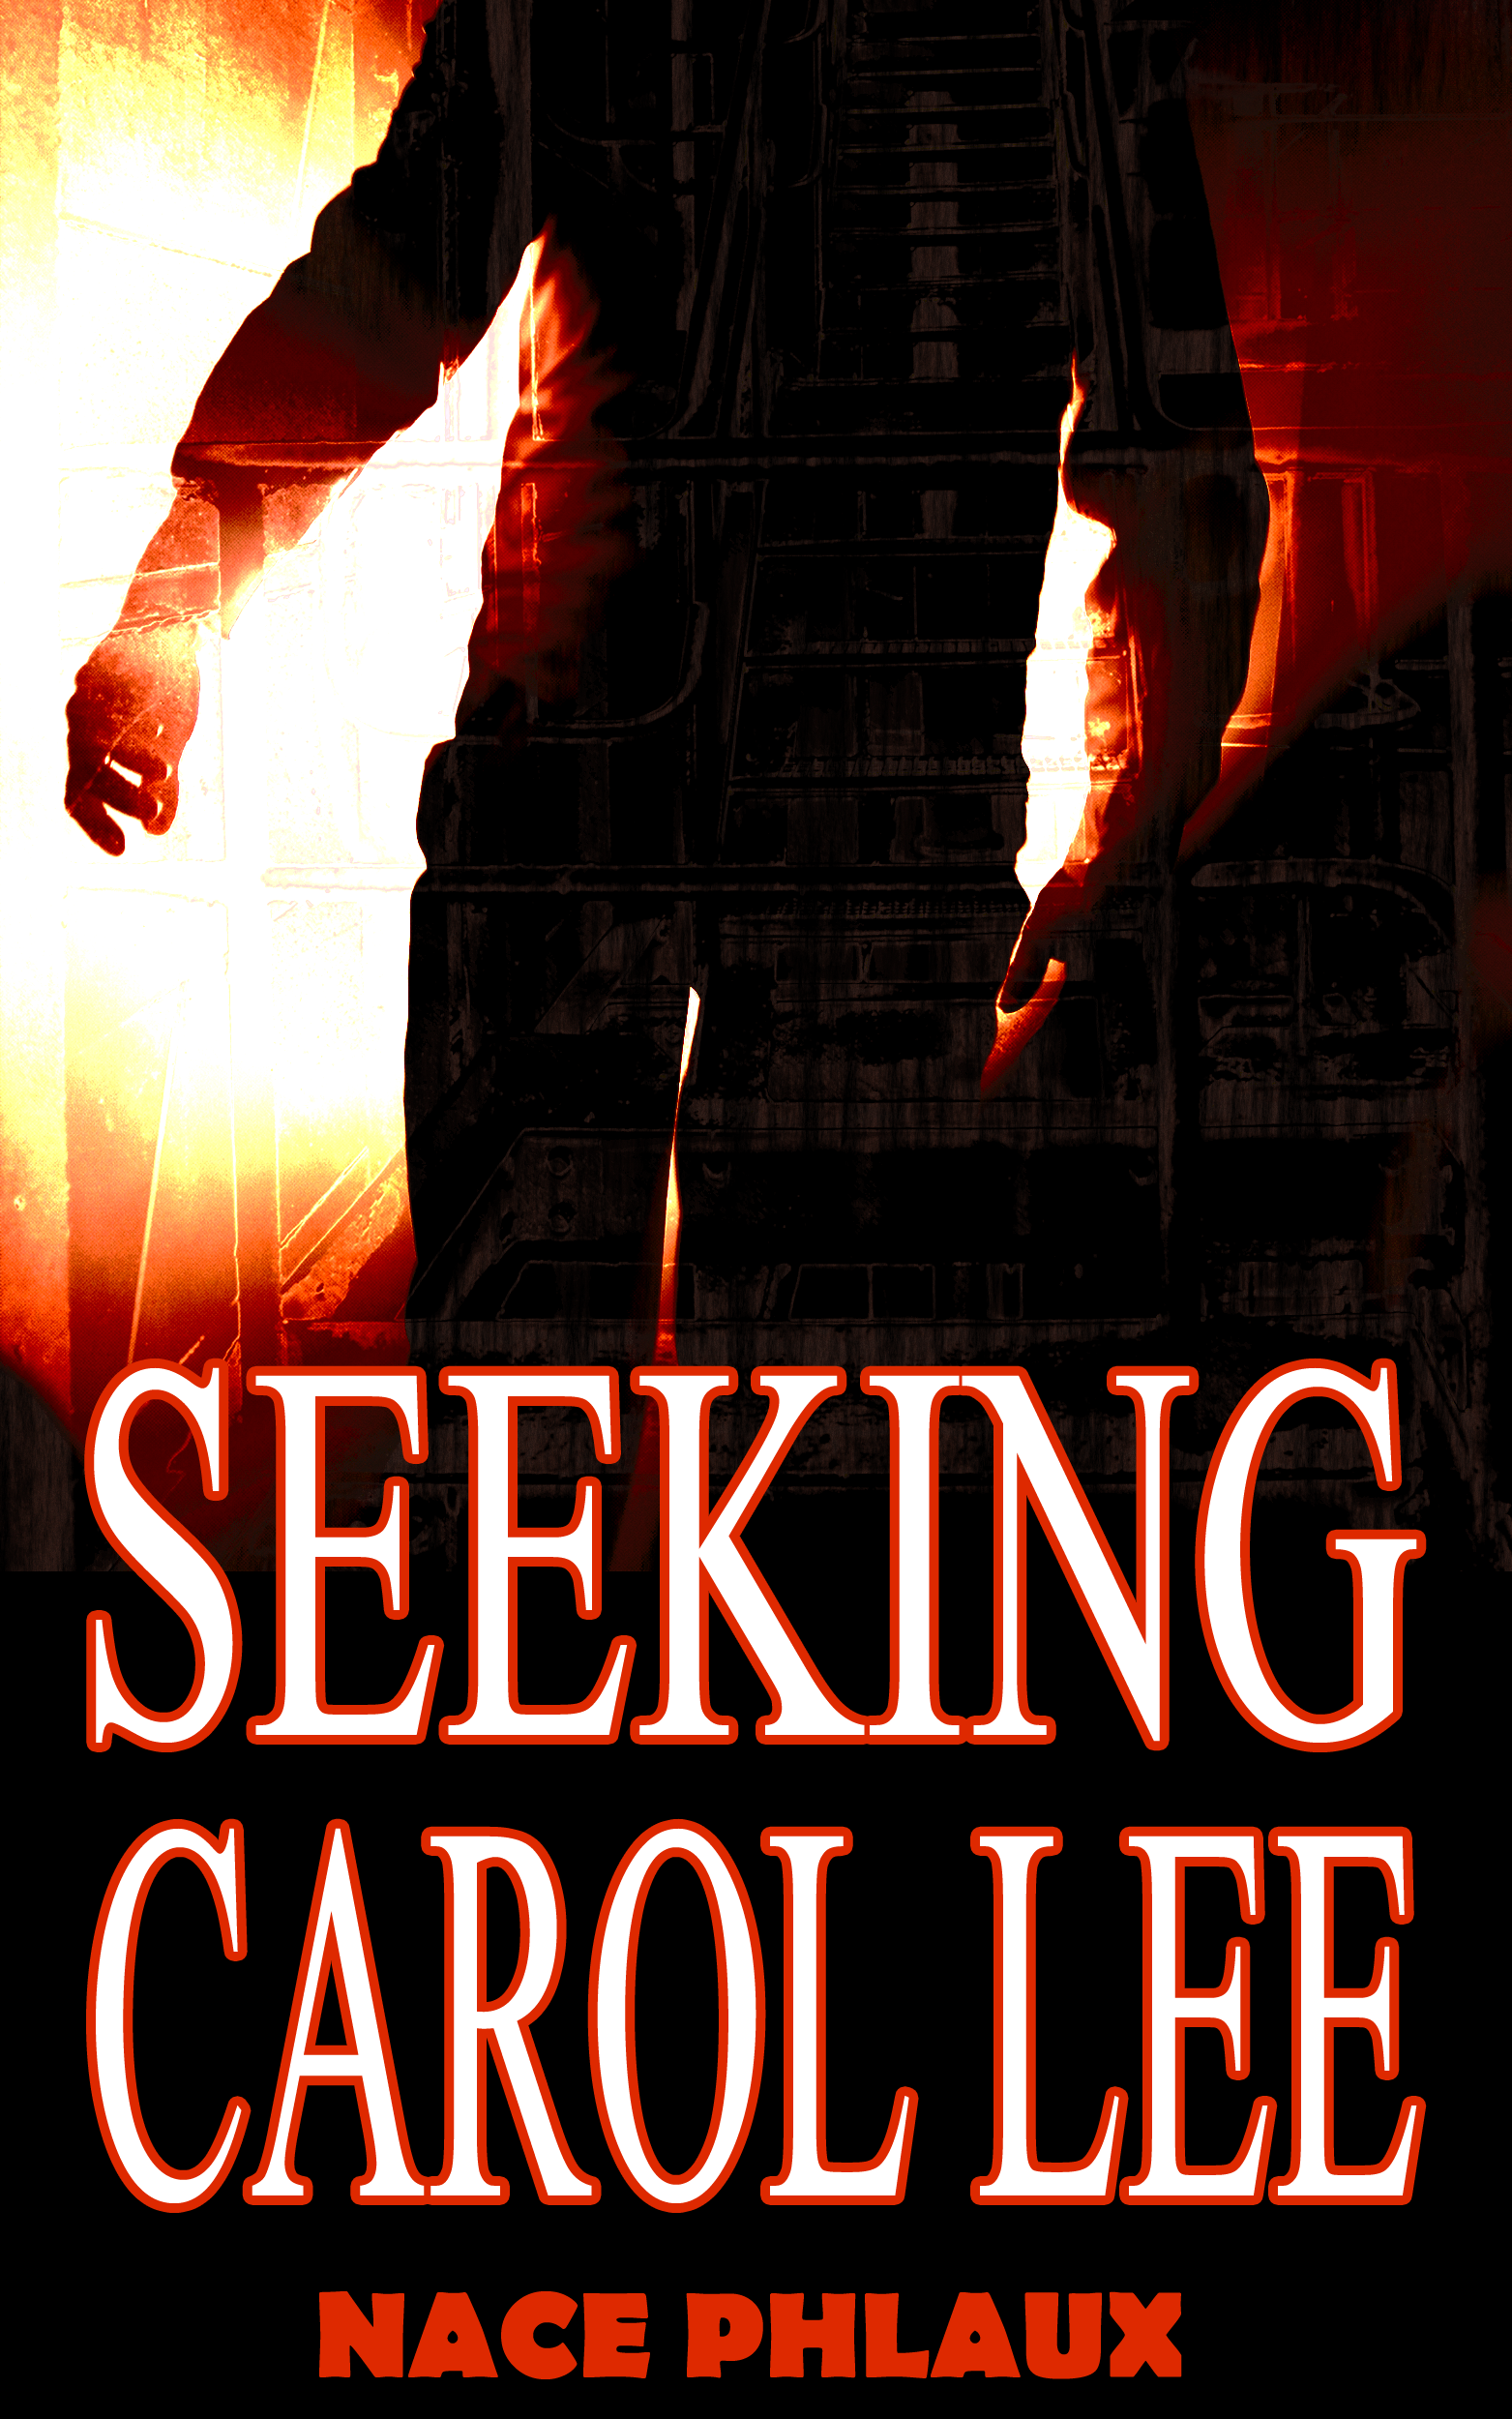 Seeking Carol Lee